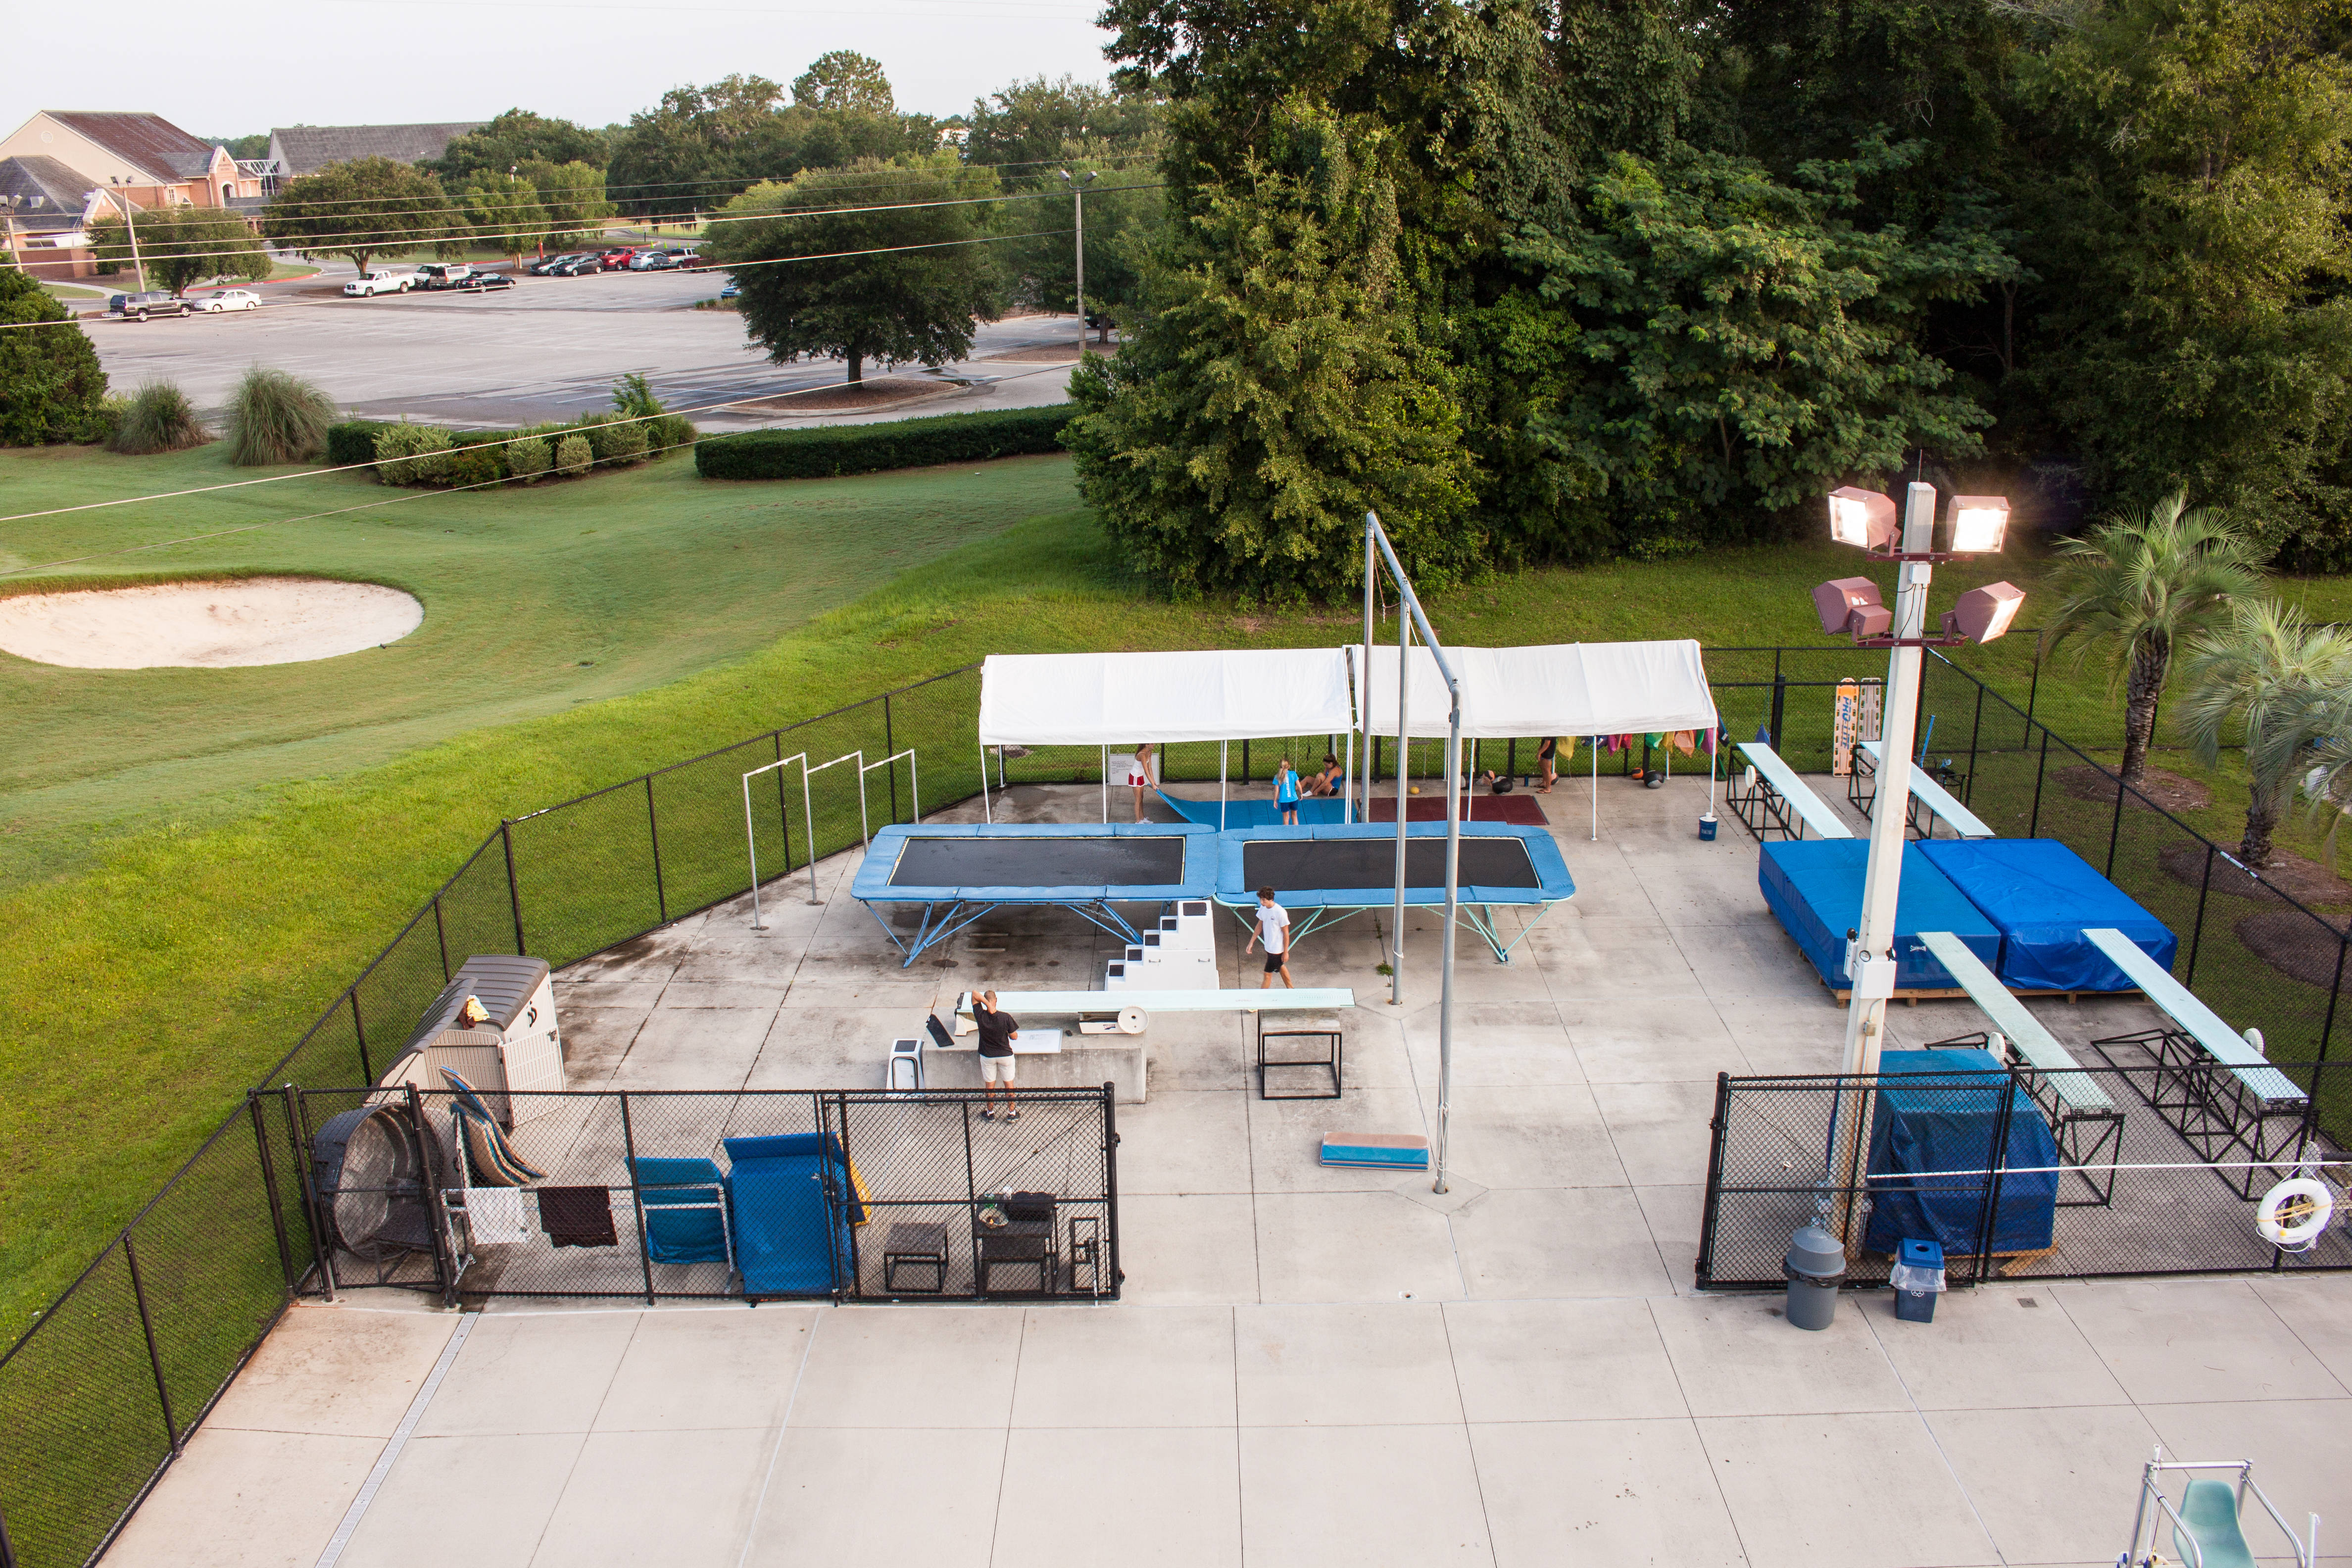 An aerial view of the diving dryland training center, which is equipped with four dry boards, ropes and a trampoline.